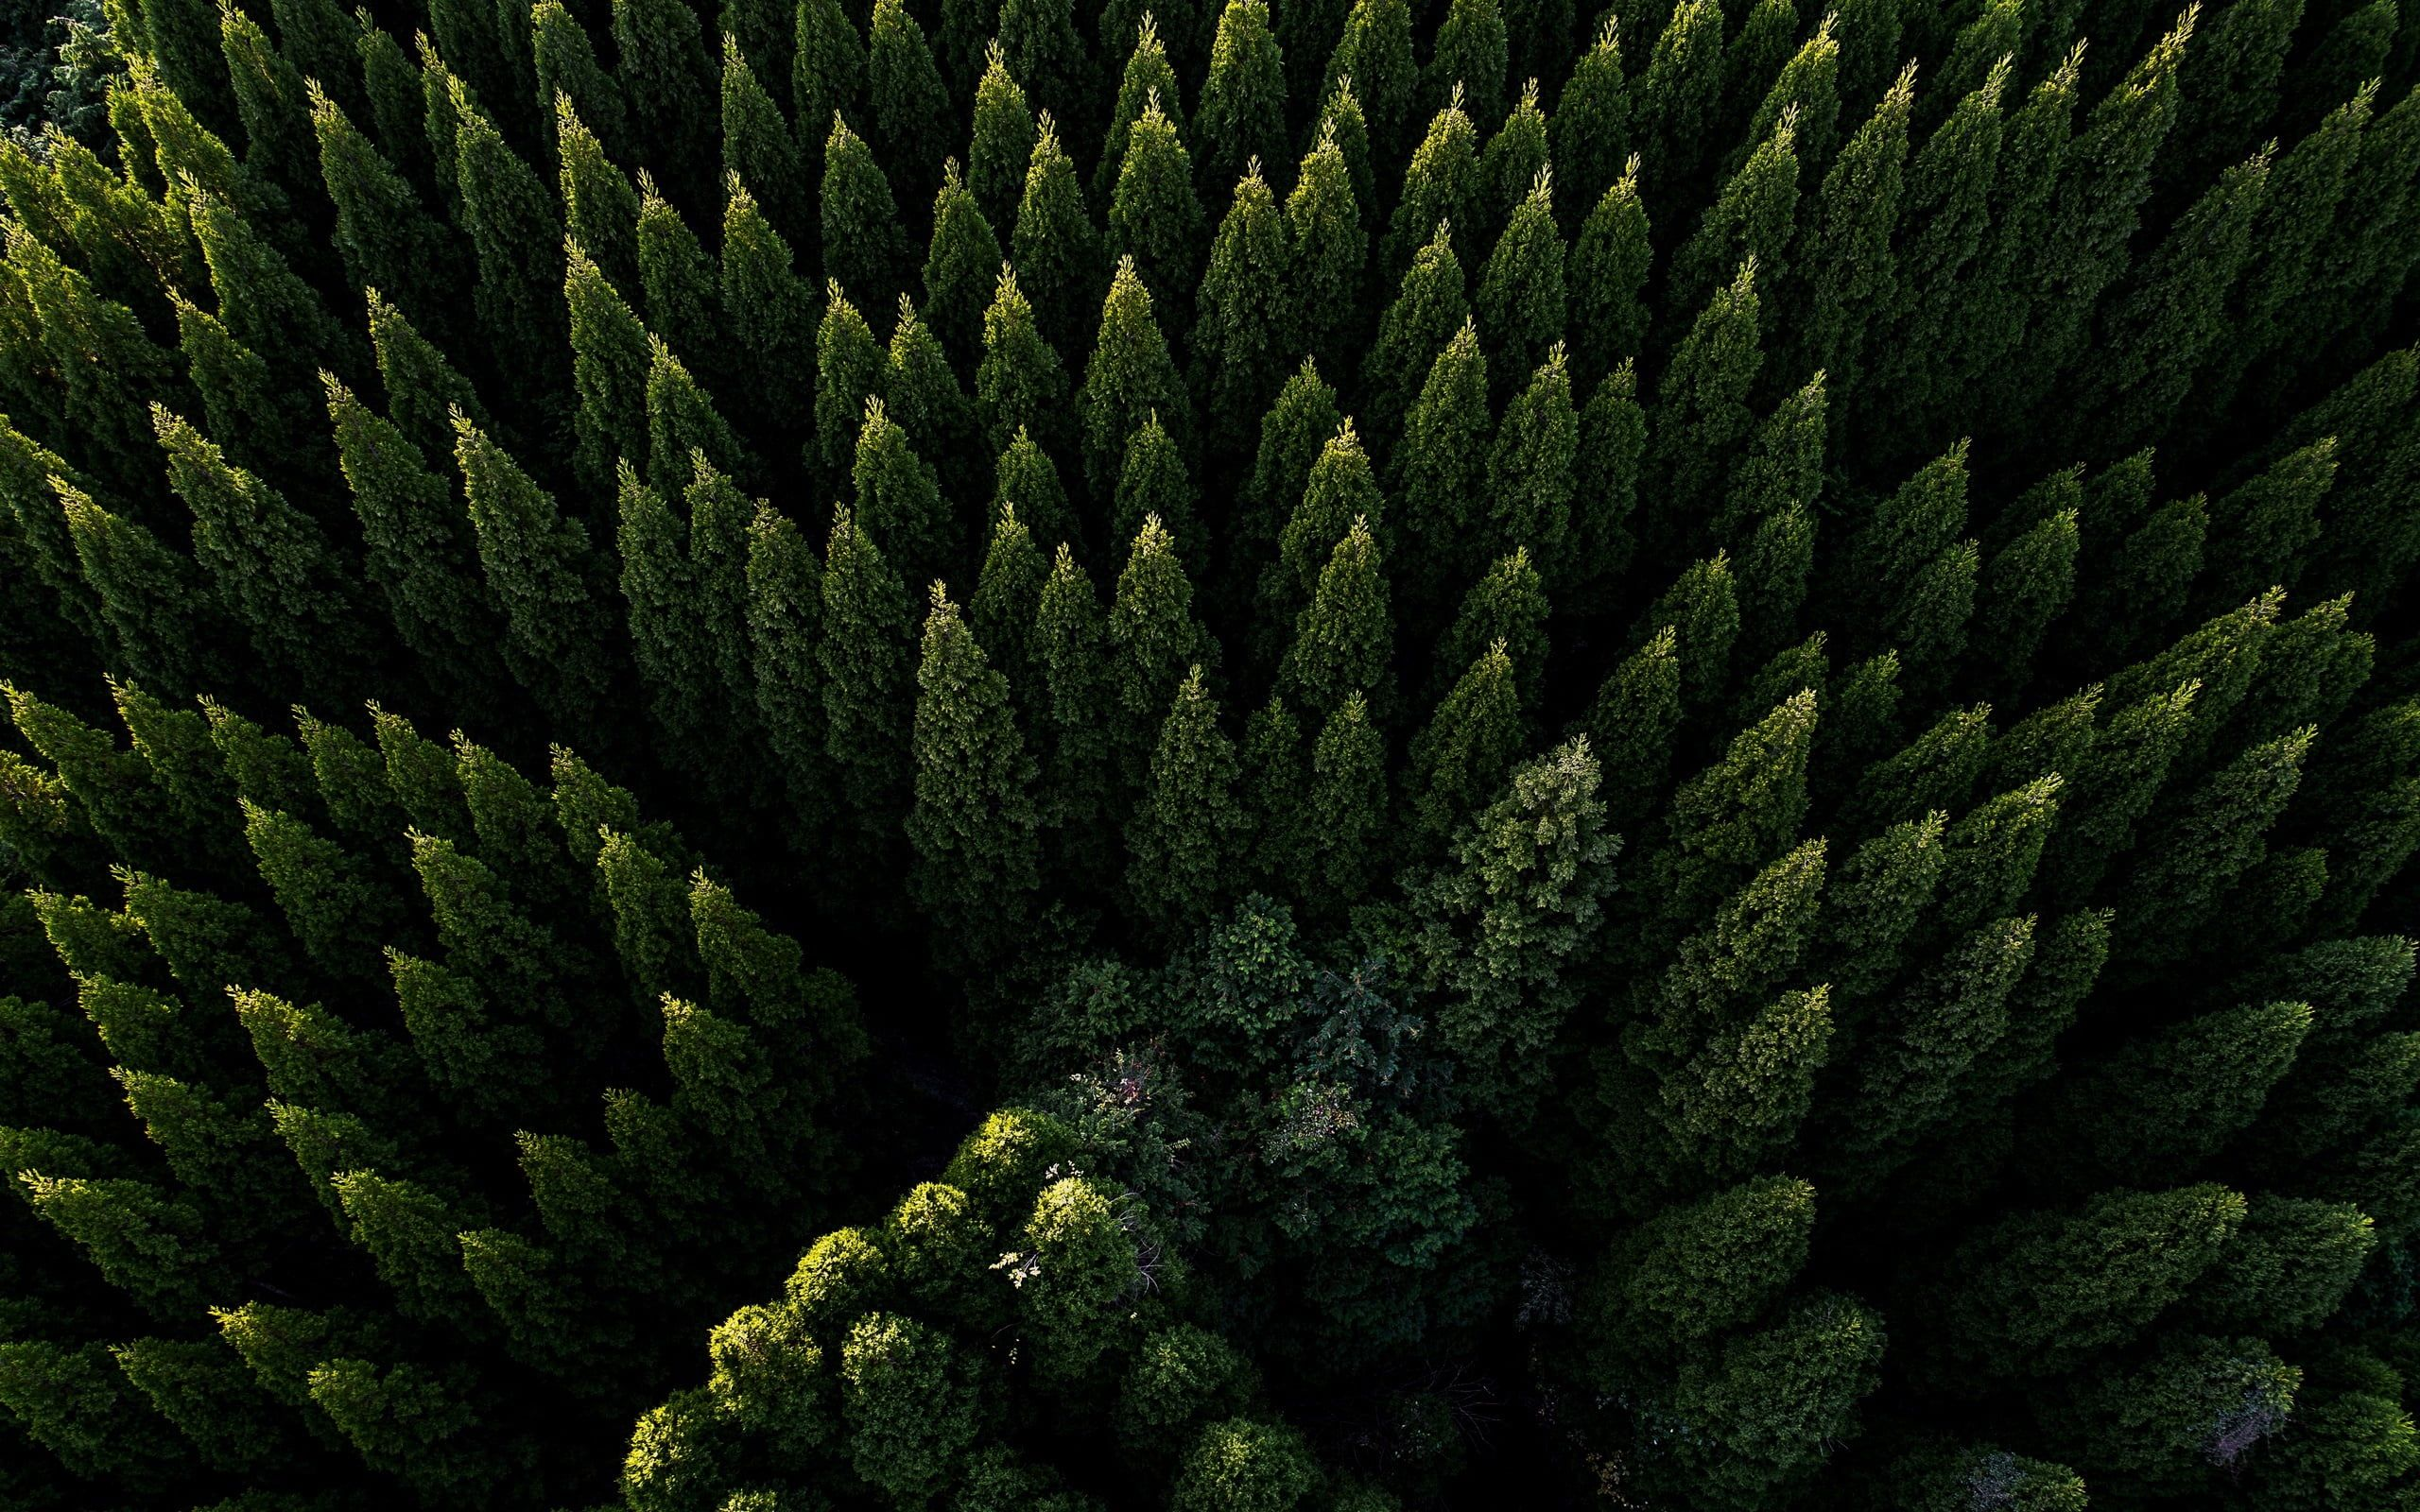 Pine Trees Aerial View Green Nature Trees Forest 2k Wallpaper Hdwallpaper Desktop Aerial View Nature Photography Aerial Hd wallpaper forest trees aerial view